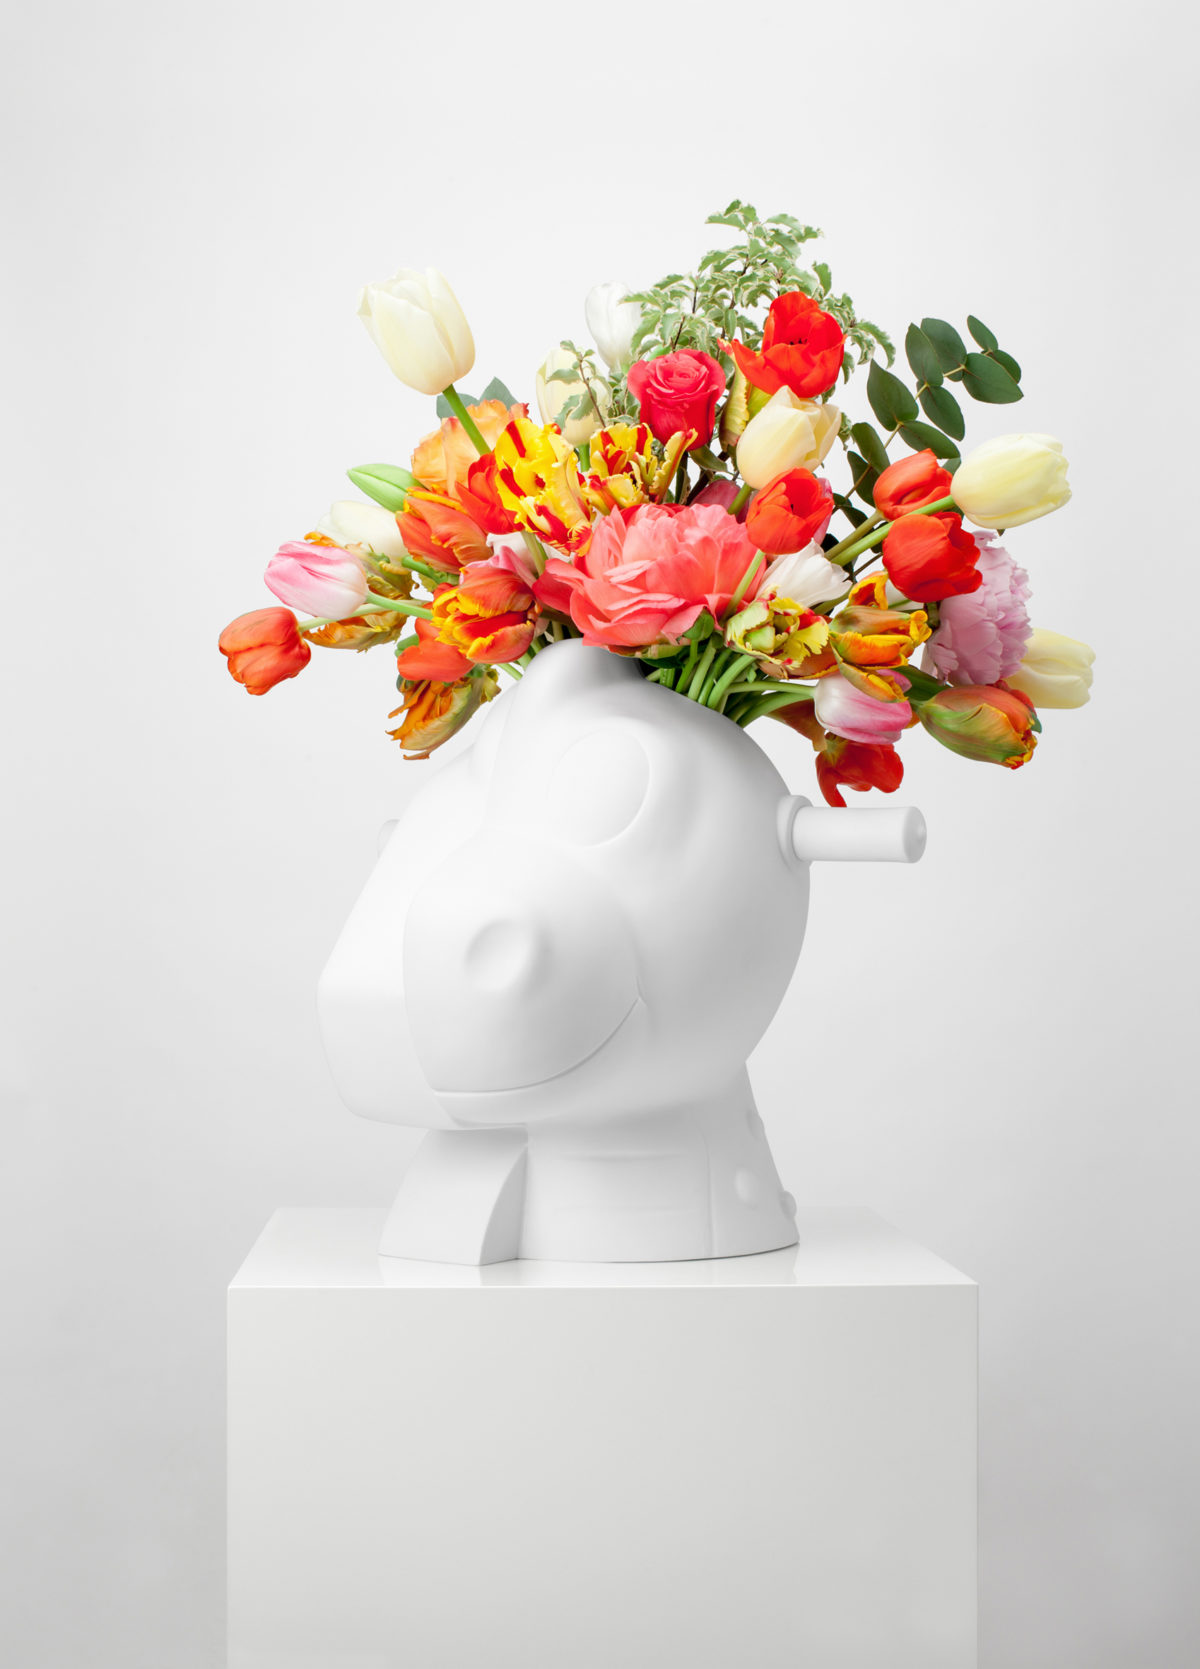 Vase Split Rocker_Jeff Koons_copyright Antonin Bonnet